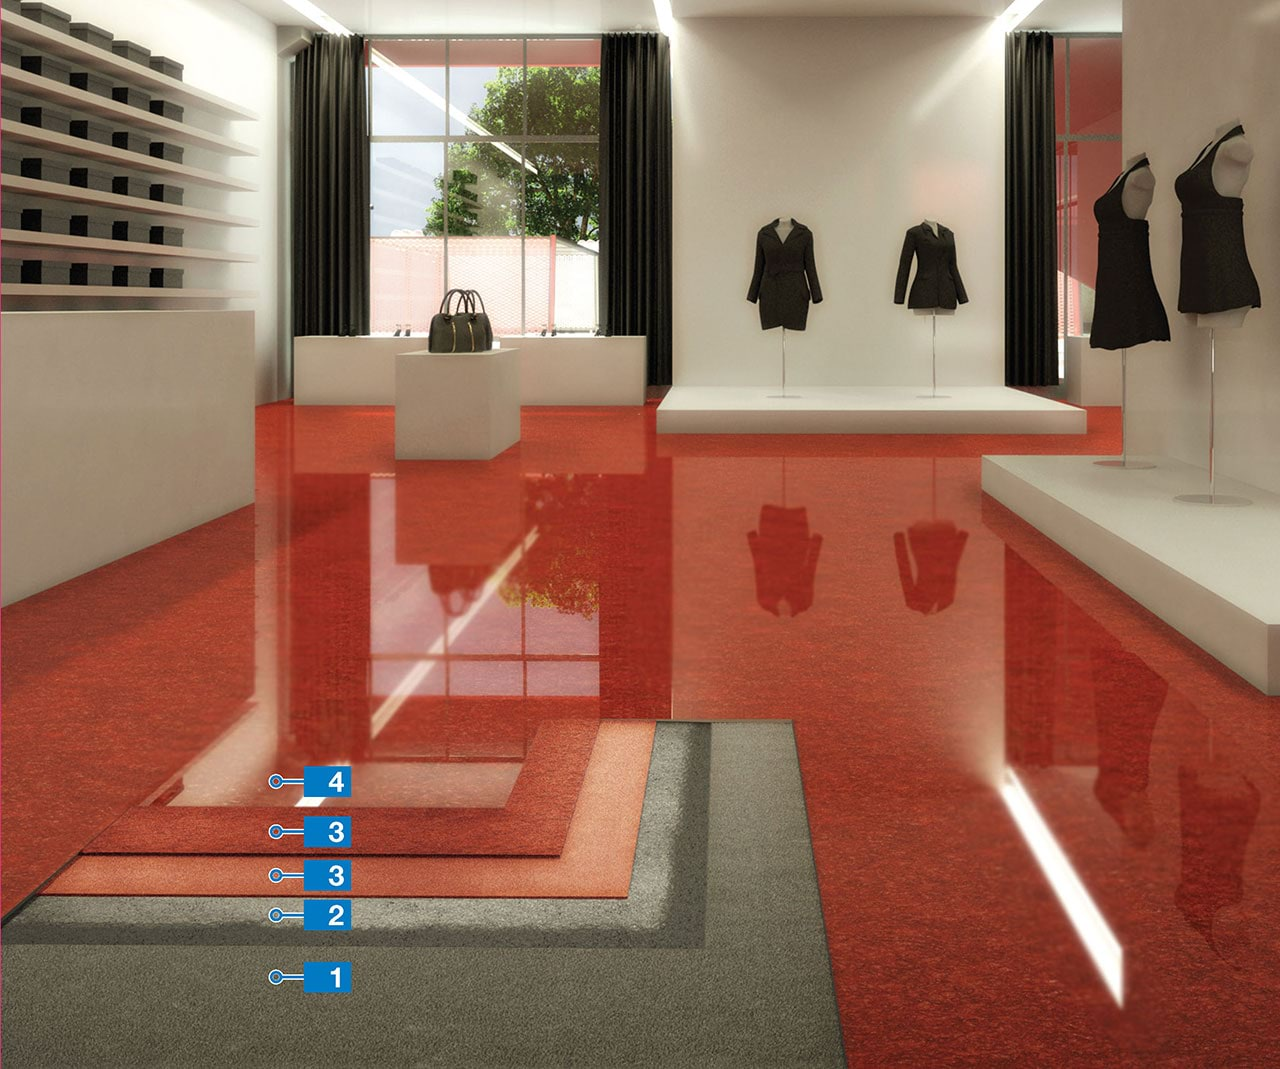 Resina Pavimenti Mapei.Resin Flooring With High Aesthetic Value For Commercial Use